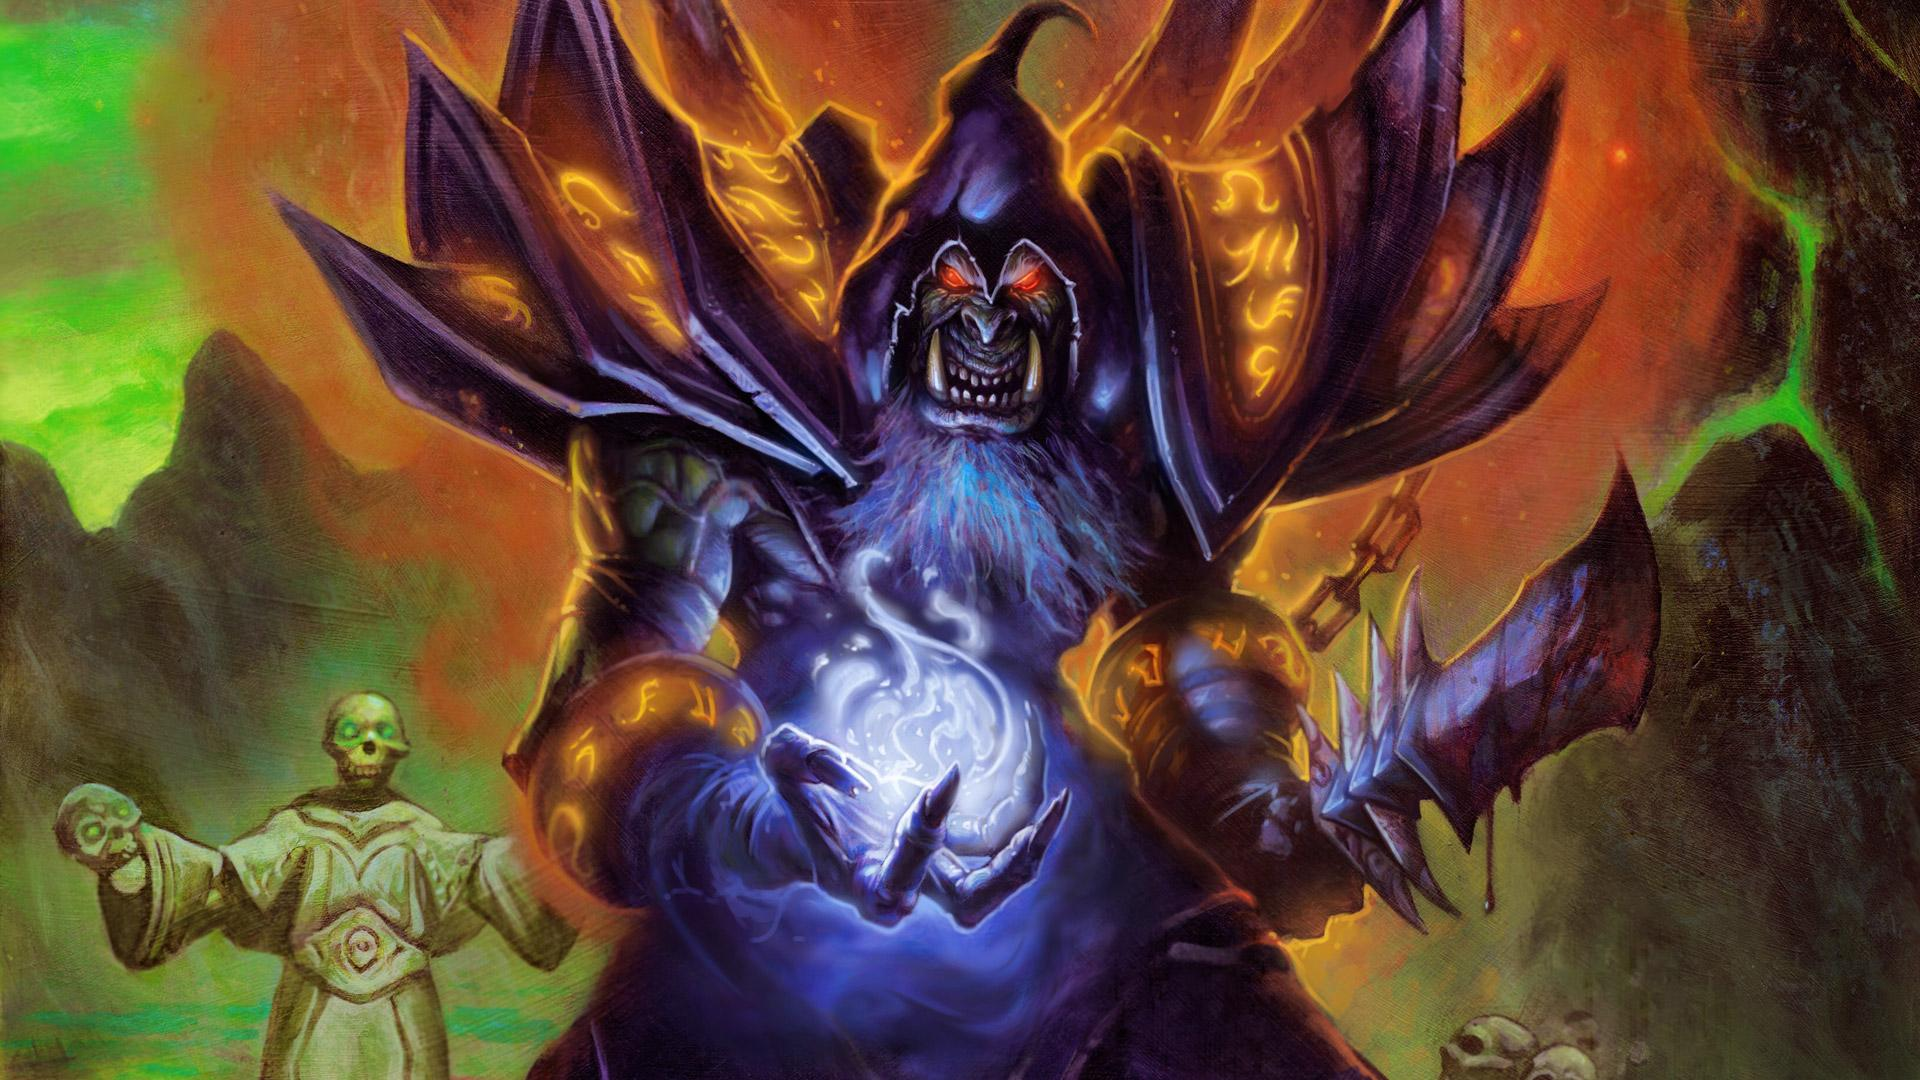 https://www.vgamerz.com/wp-content/uploads/2015/03/best-warlock-cards-hearthstone.jpg